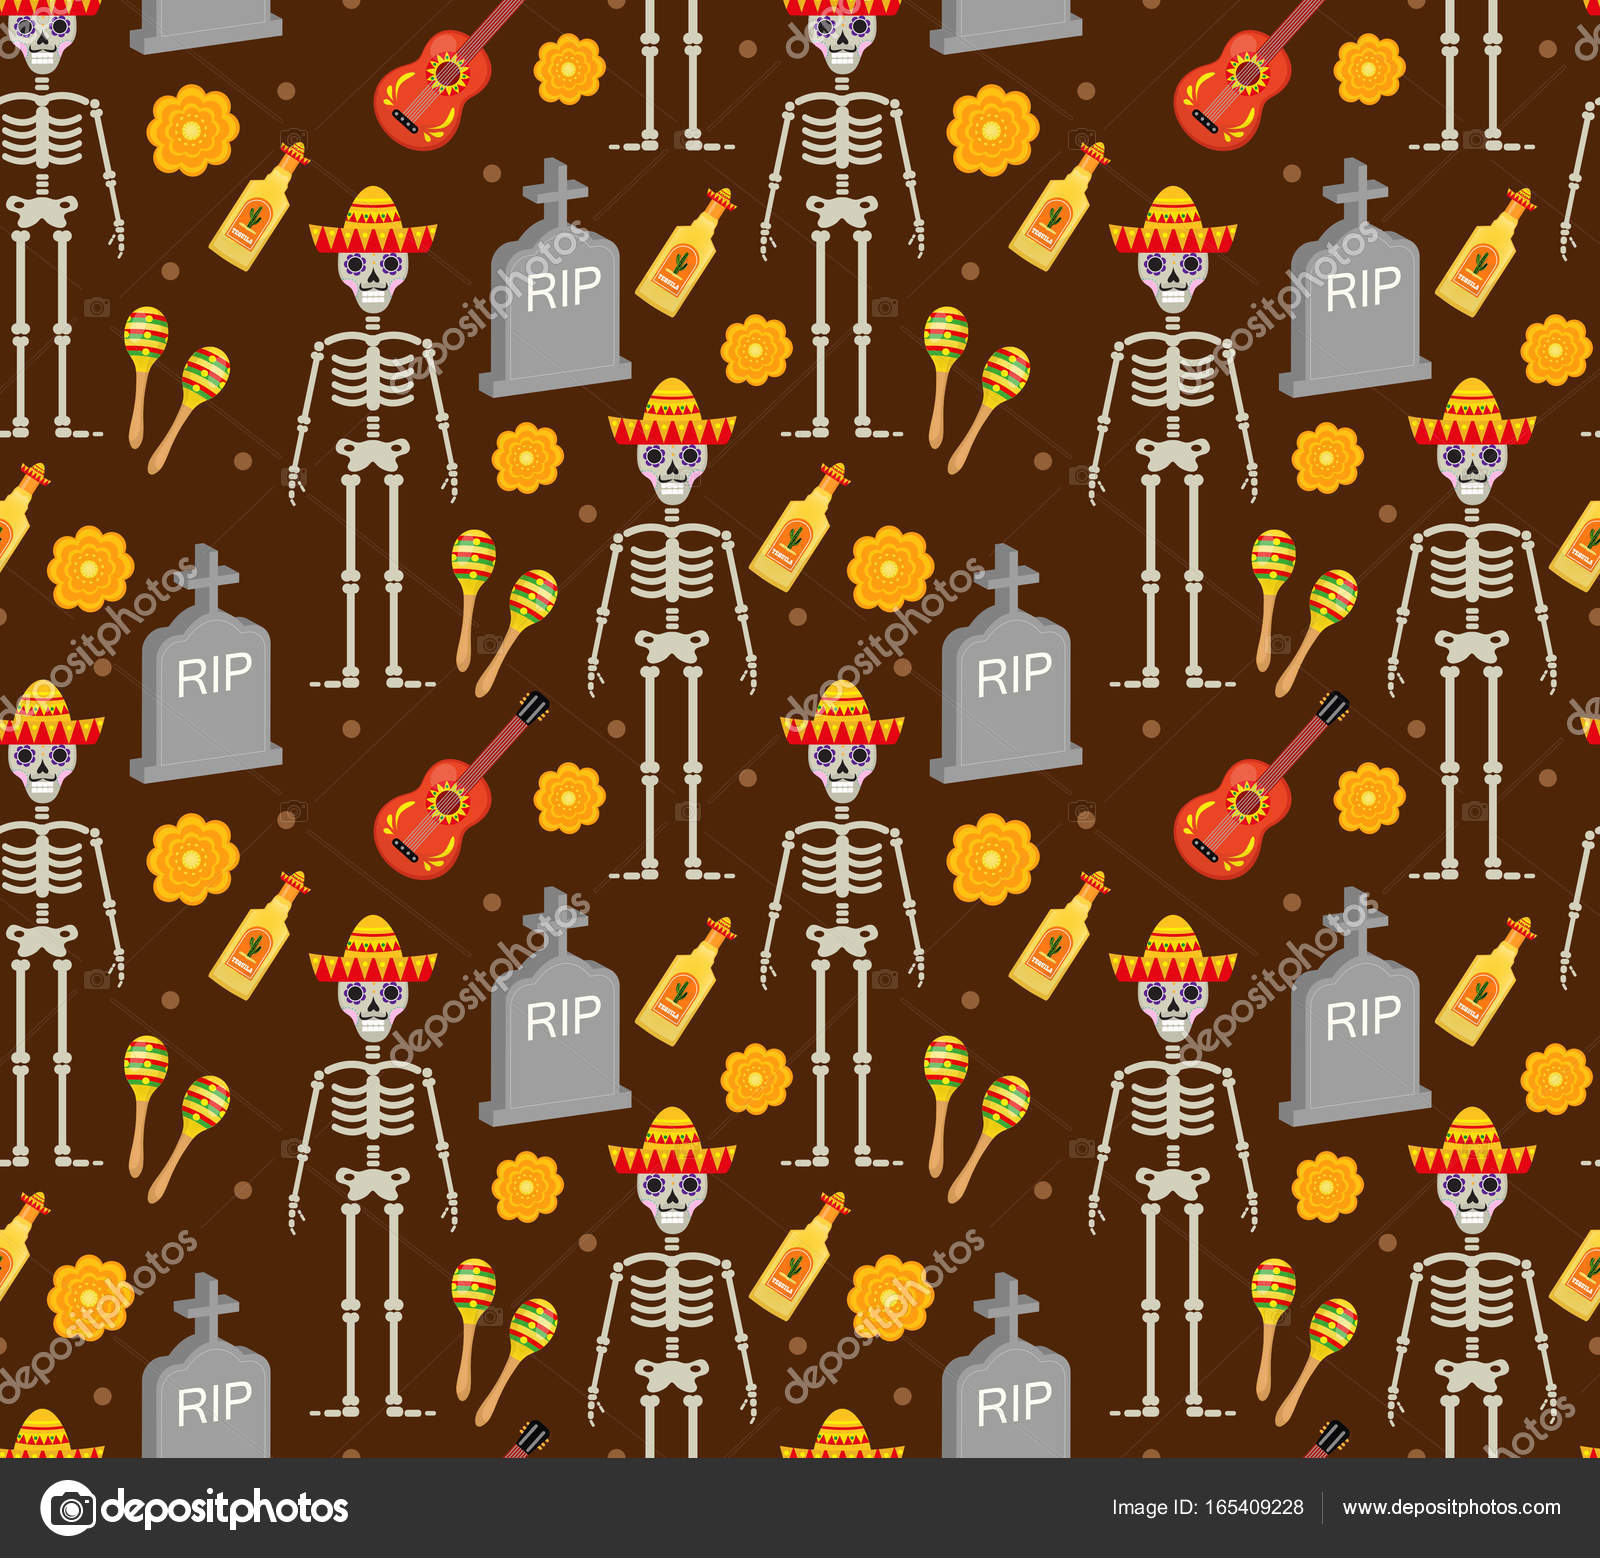 Day Of The Dead Holiday In Mexico Seamless Pattern With Sugar Skulls Skeleton Endless Background Dia De Muertos Repeating Texture